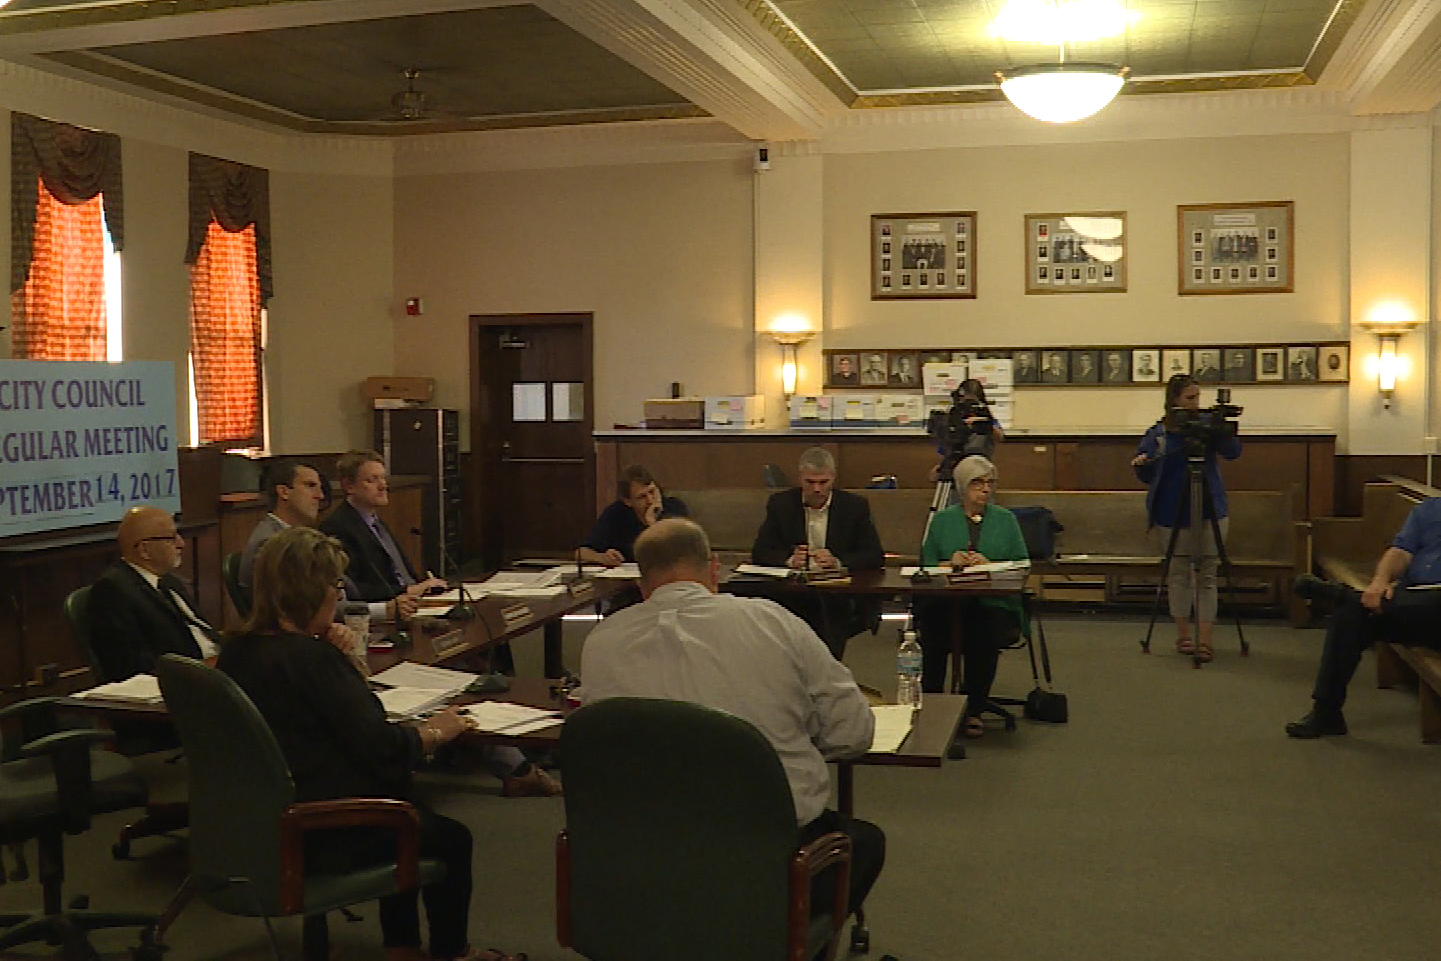 The Terre Haute City Council in the courtroom at City Hall.